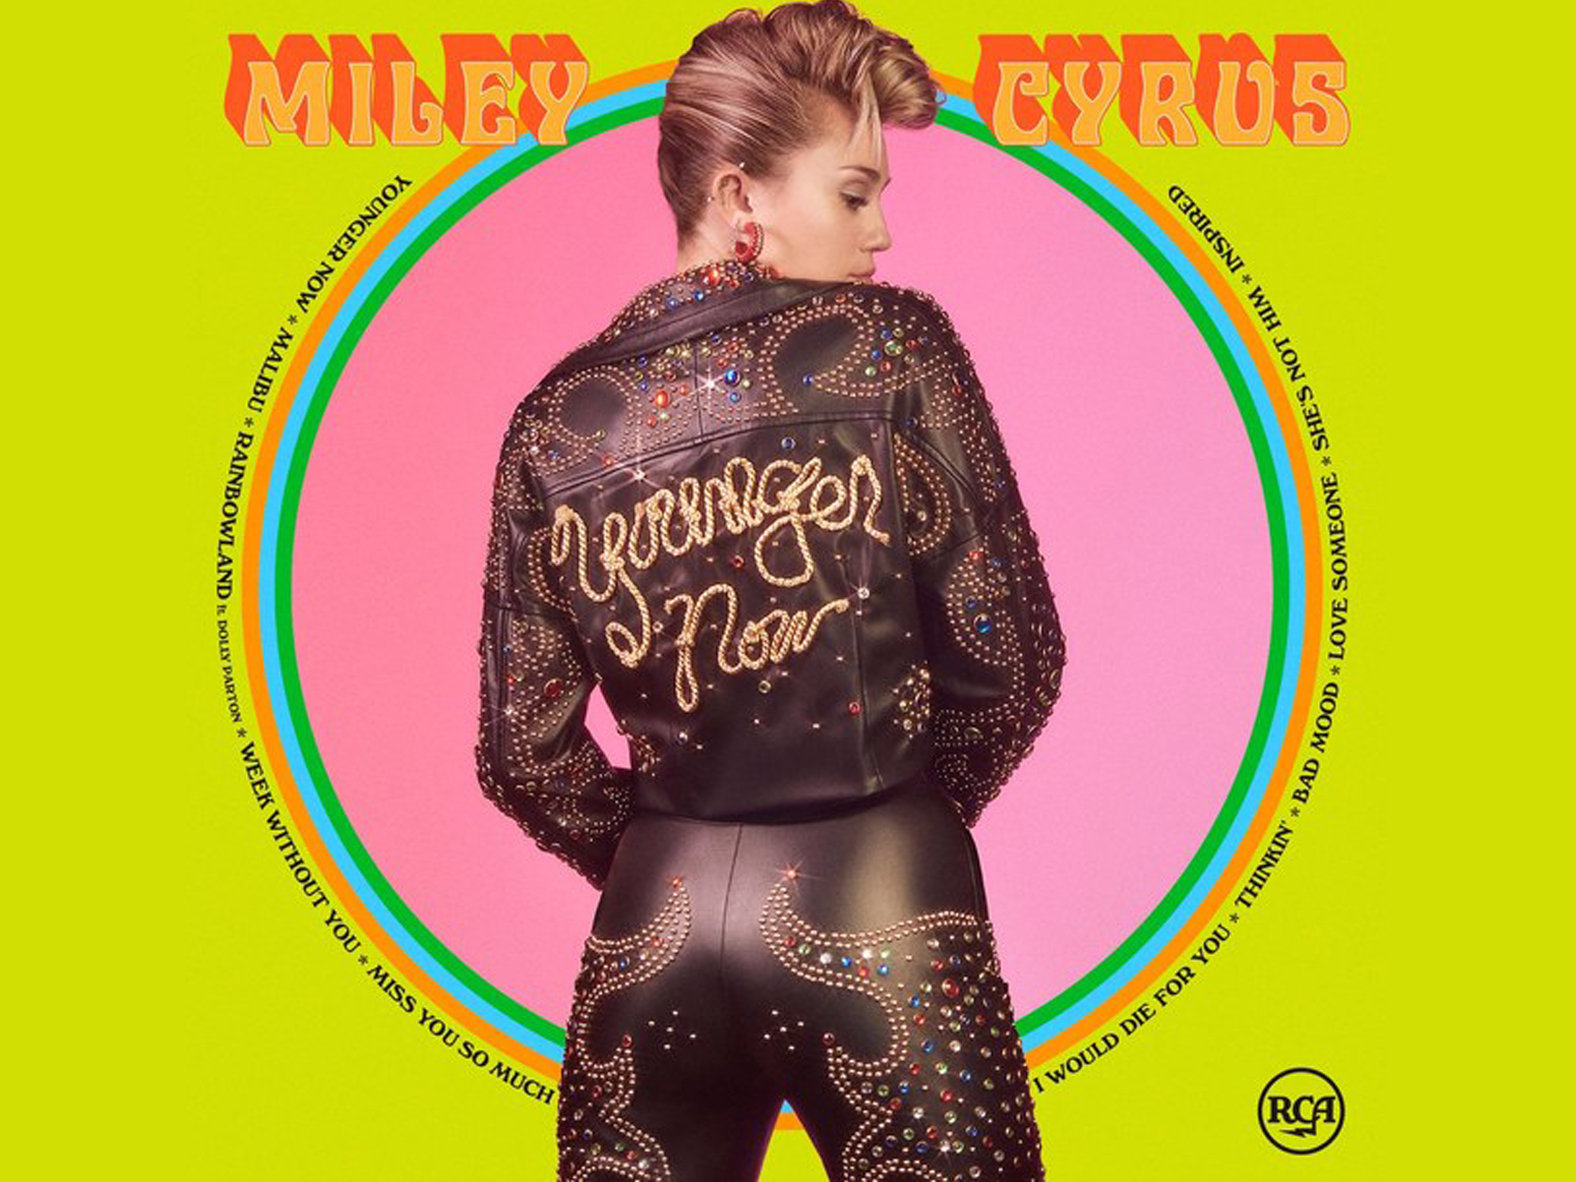 Miley Cyrus CD Cover